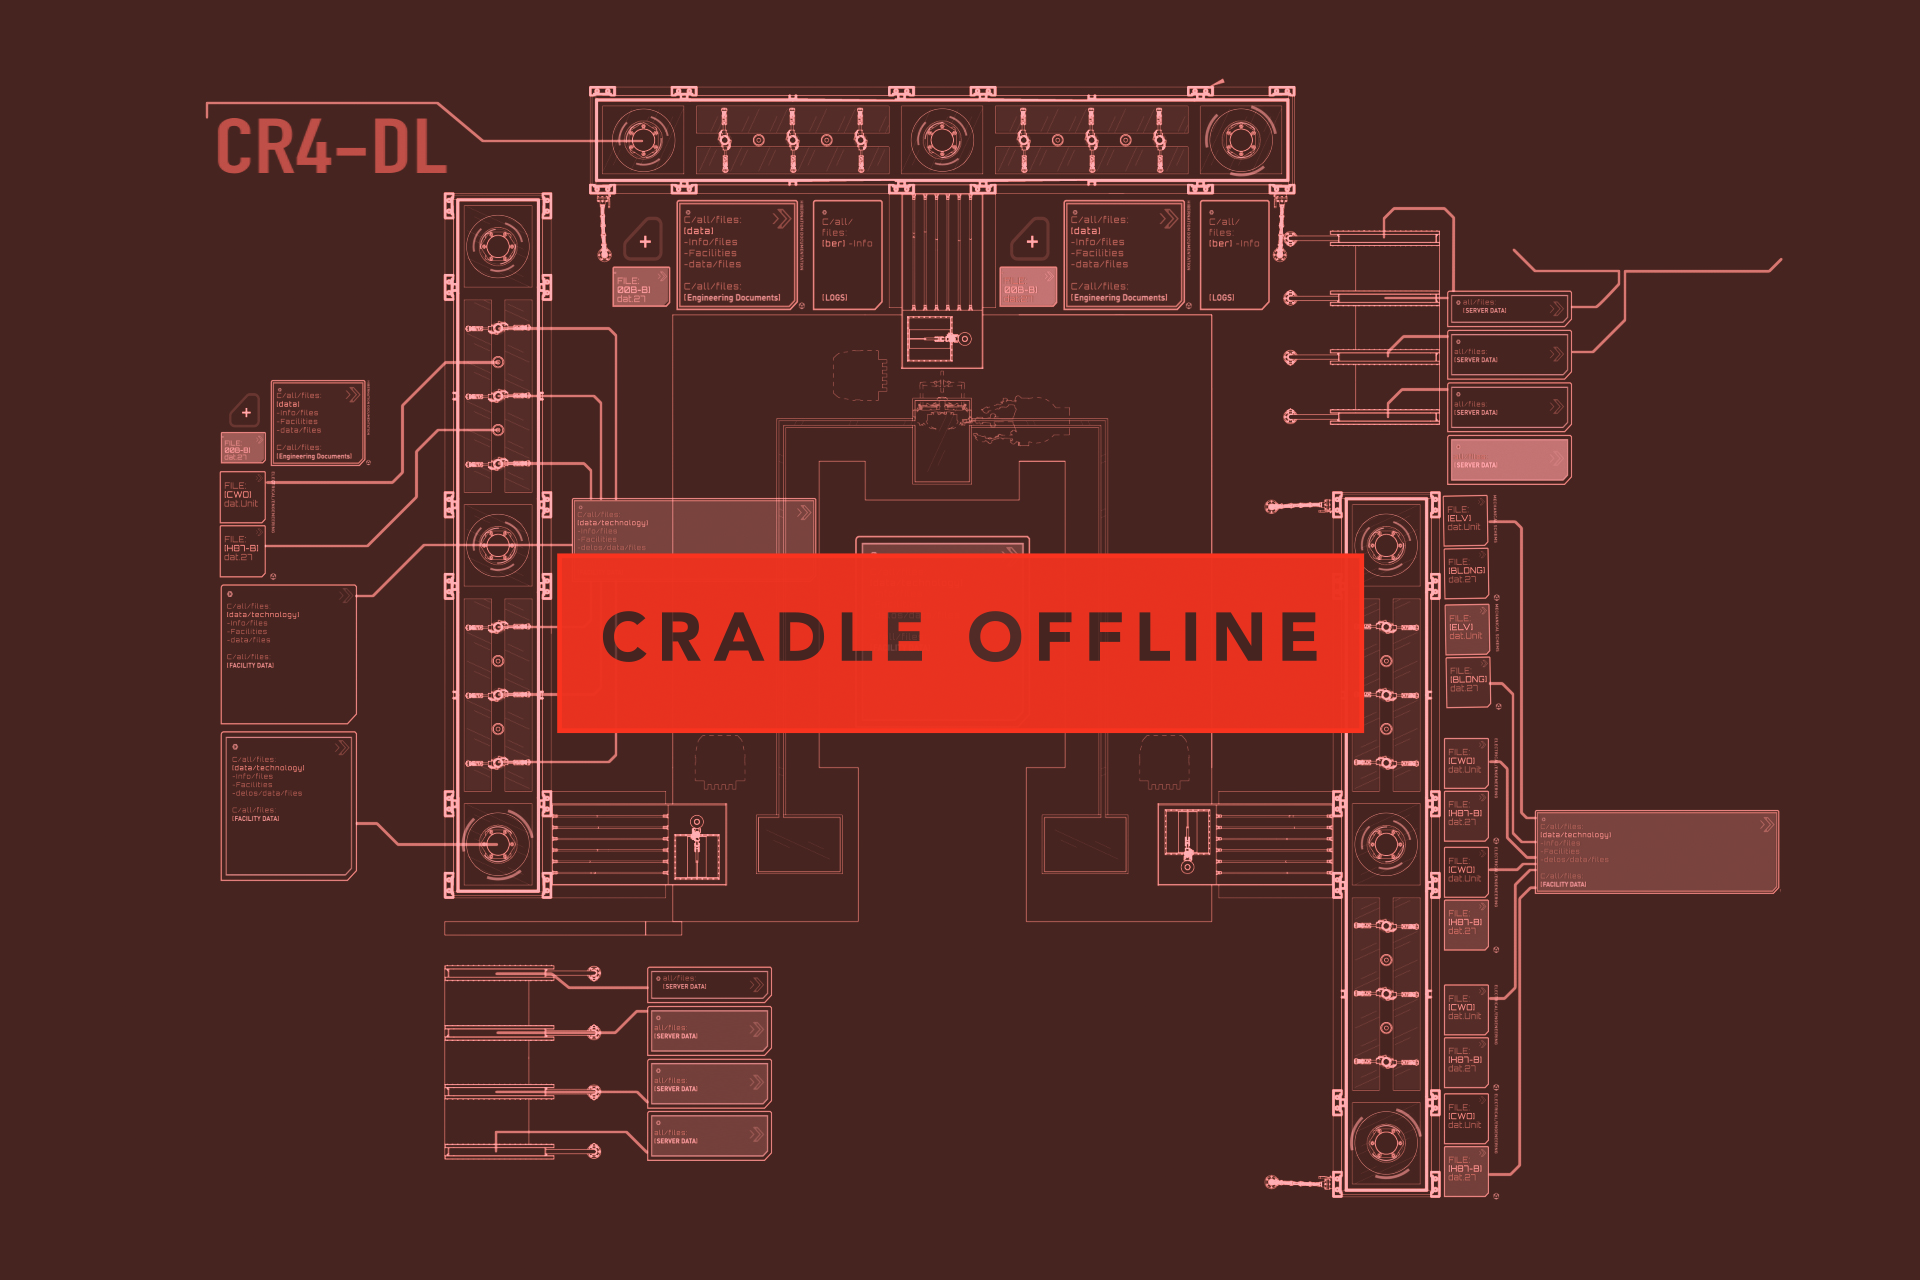 A Guide To Westworlds Viral Marketing For Fans Who Dont Want Black Box Stage Diagram Theater Feiderdesign Schematic Of The Cradle Codenamed Cr4 Dl